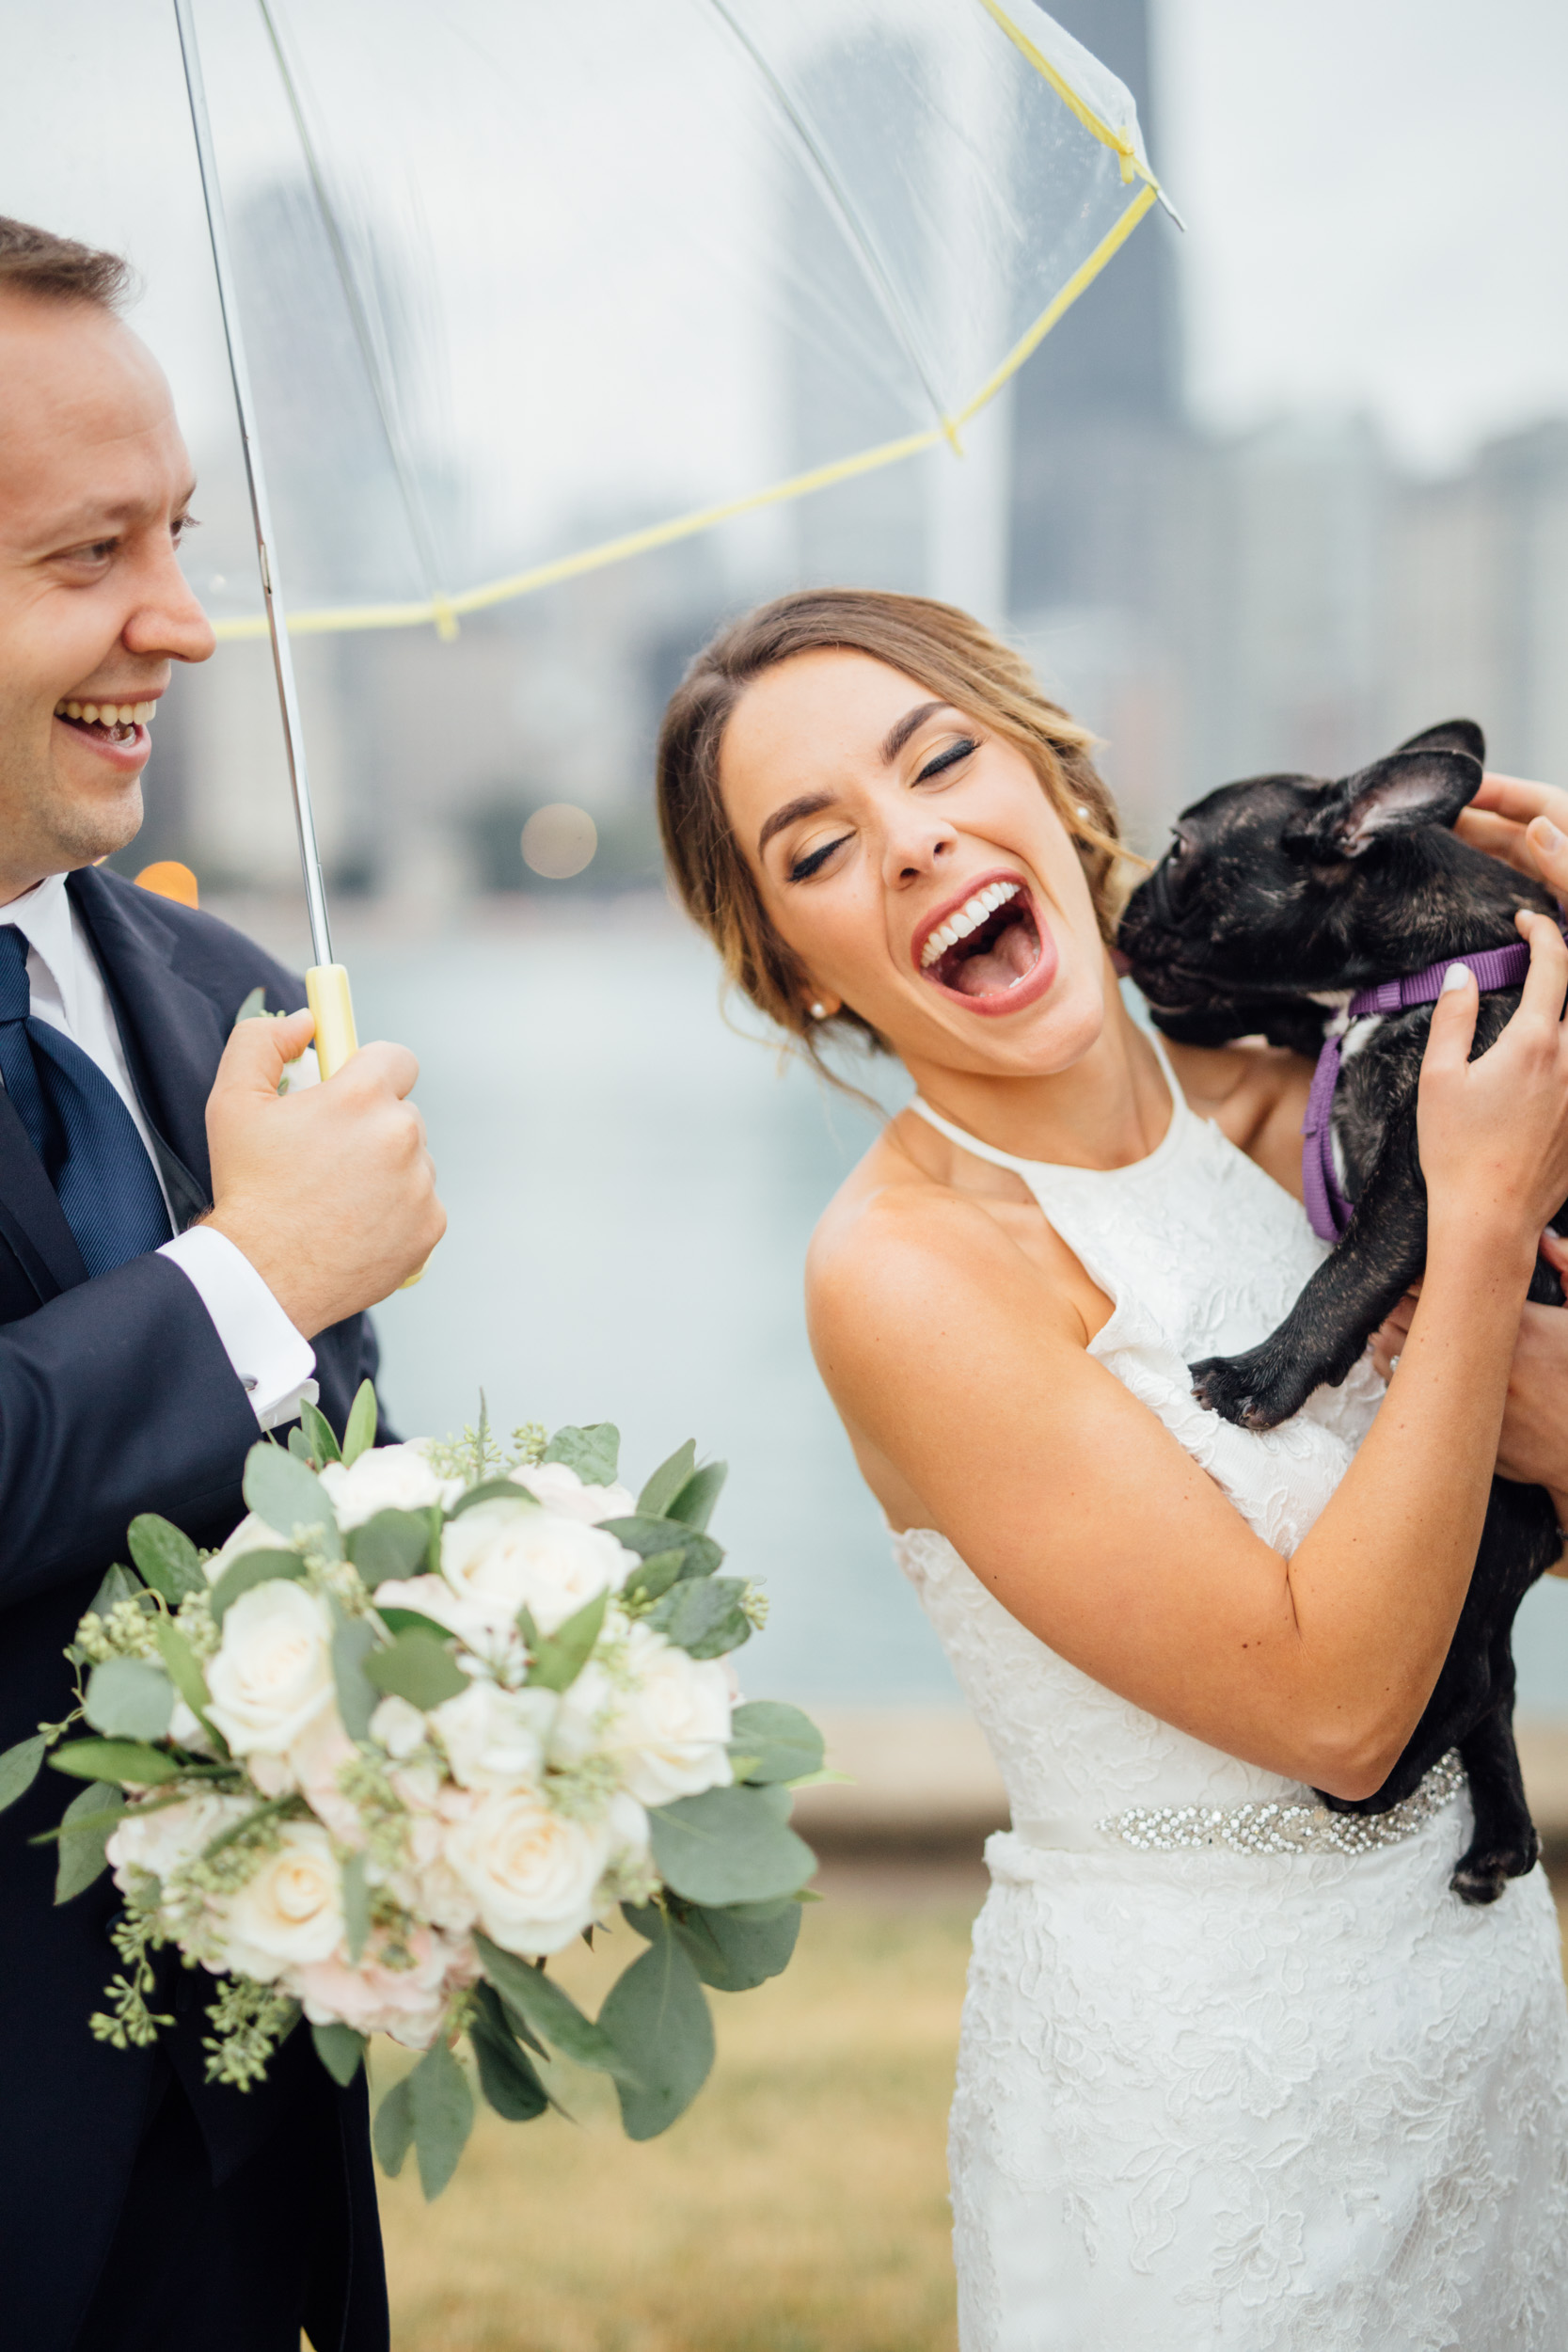 Downtown Chicago Wedding_Polly C Photography 1706171934.jpg